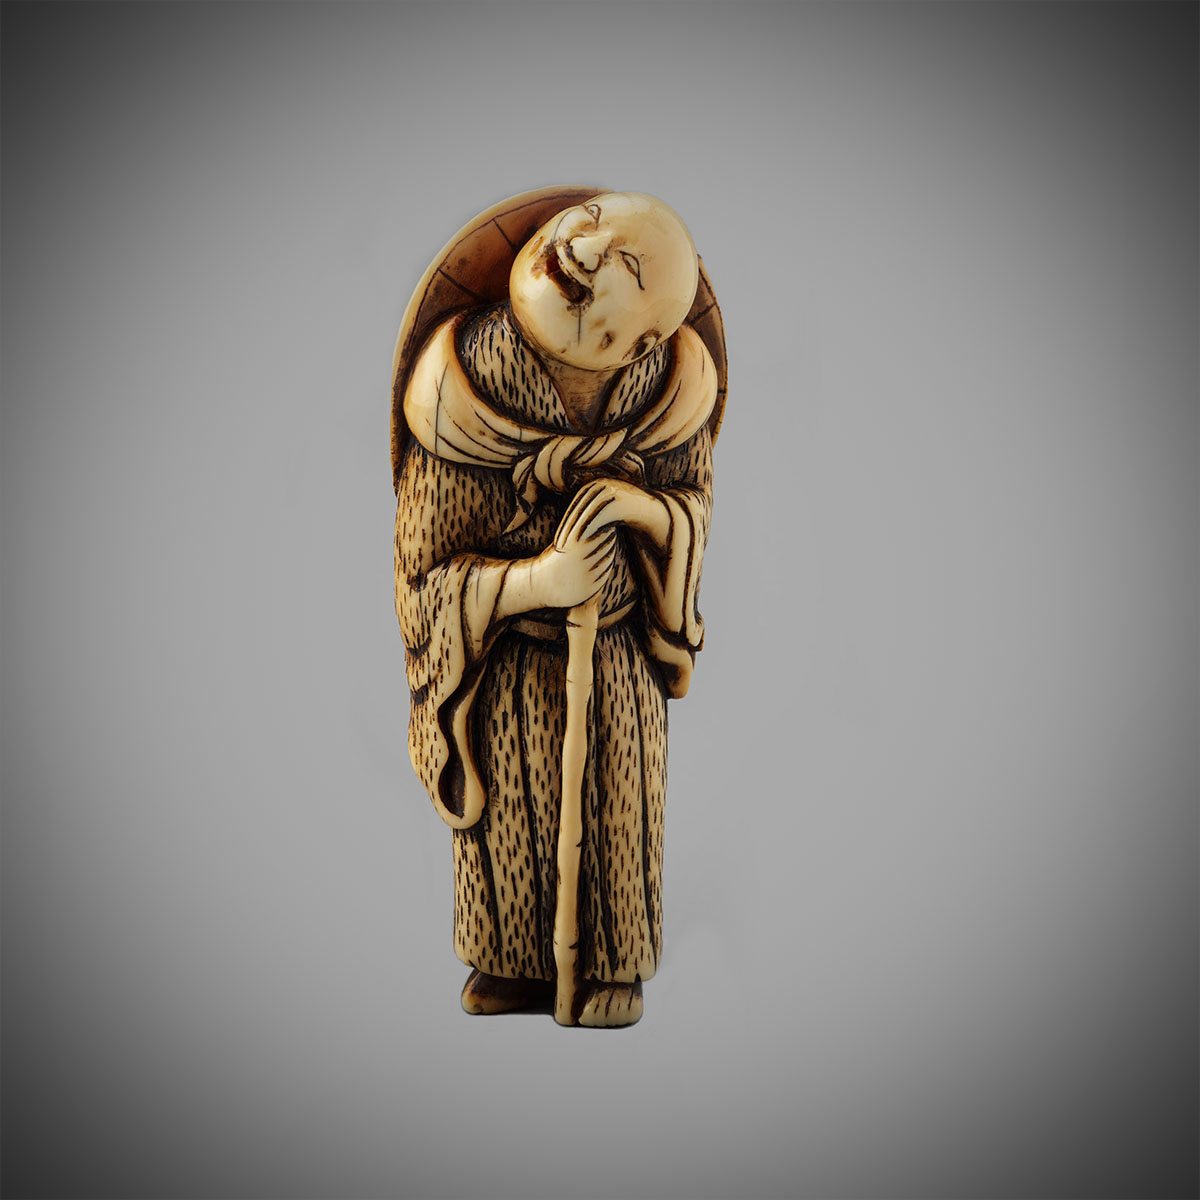 Stained Ivory Netsuke of an Itinerant Priest